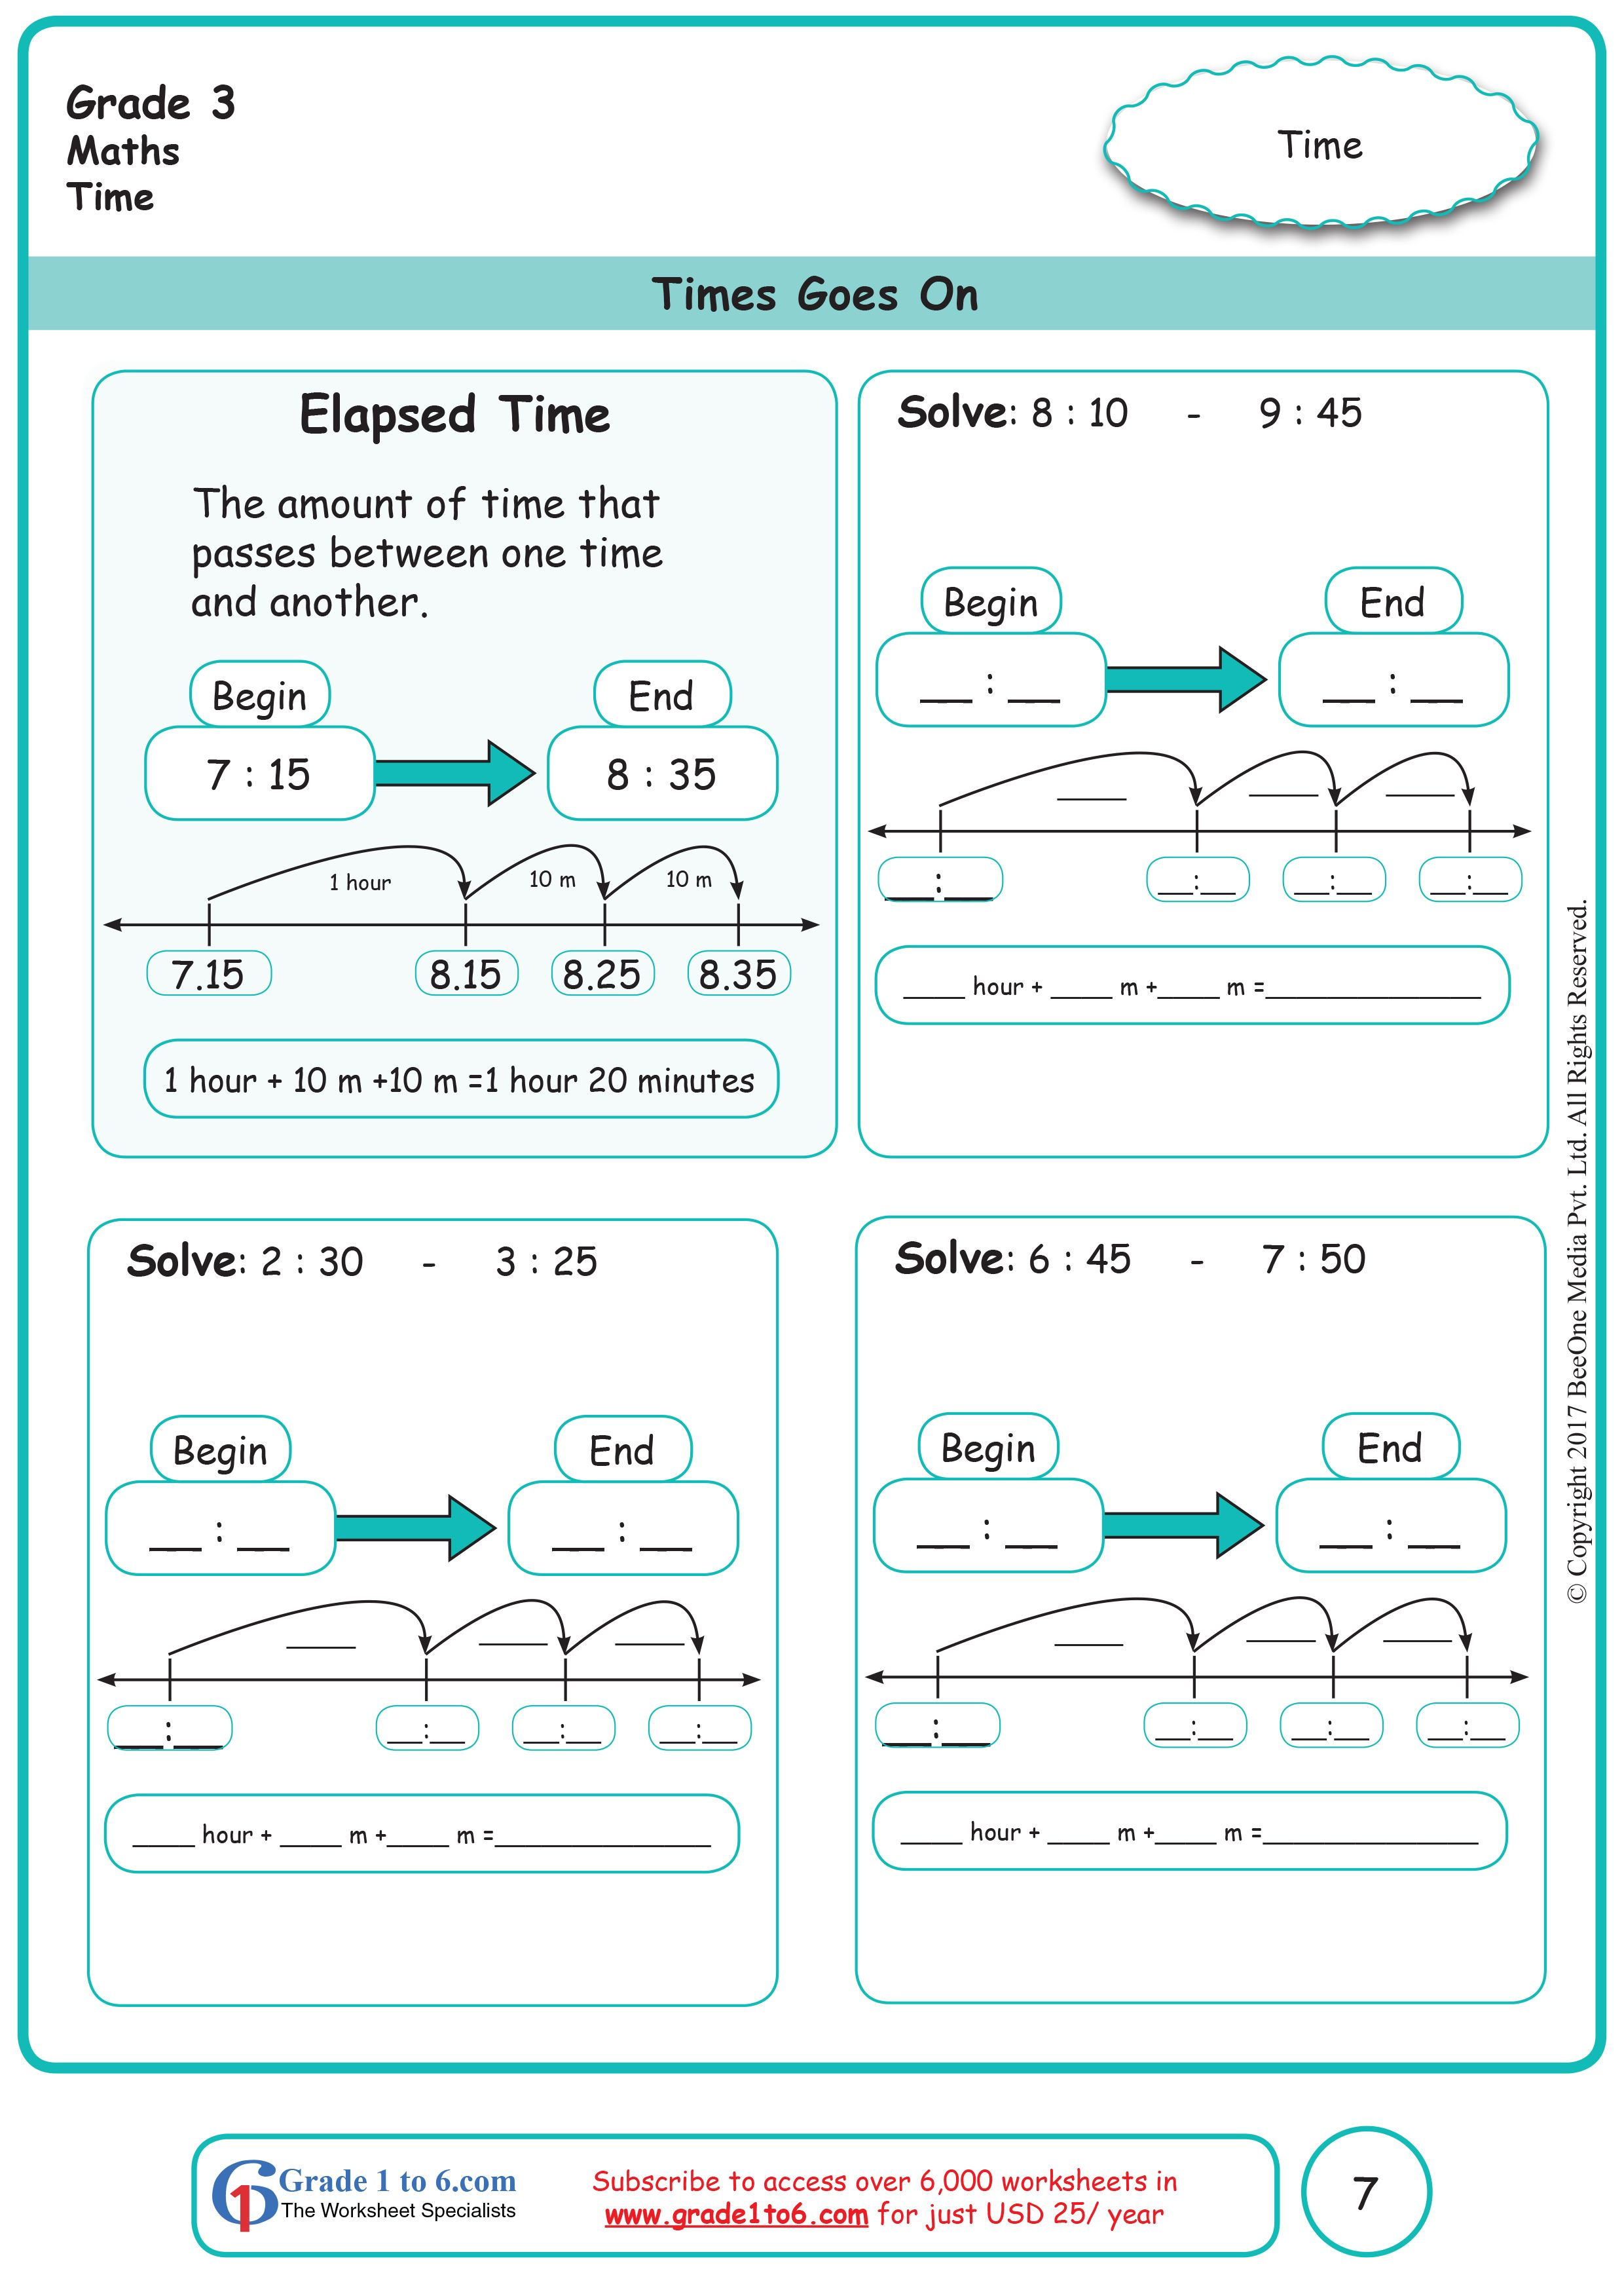 Elapsed Time Worksheets In 2020 Time Worksheets Elapsed Time Worksheets 3rd Grade Math Worksheets